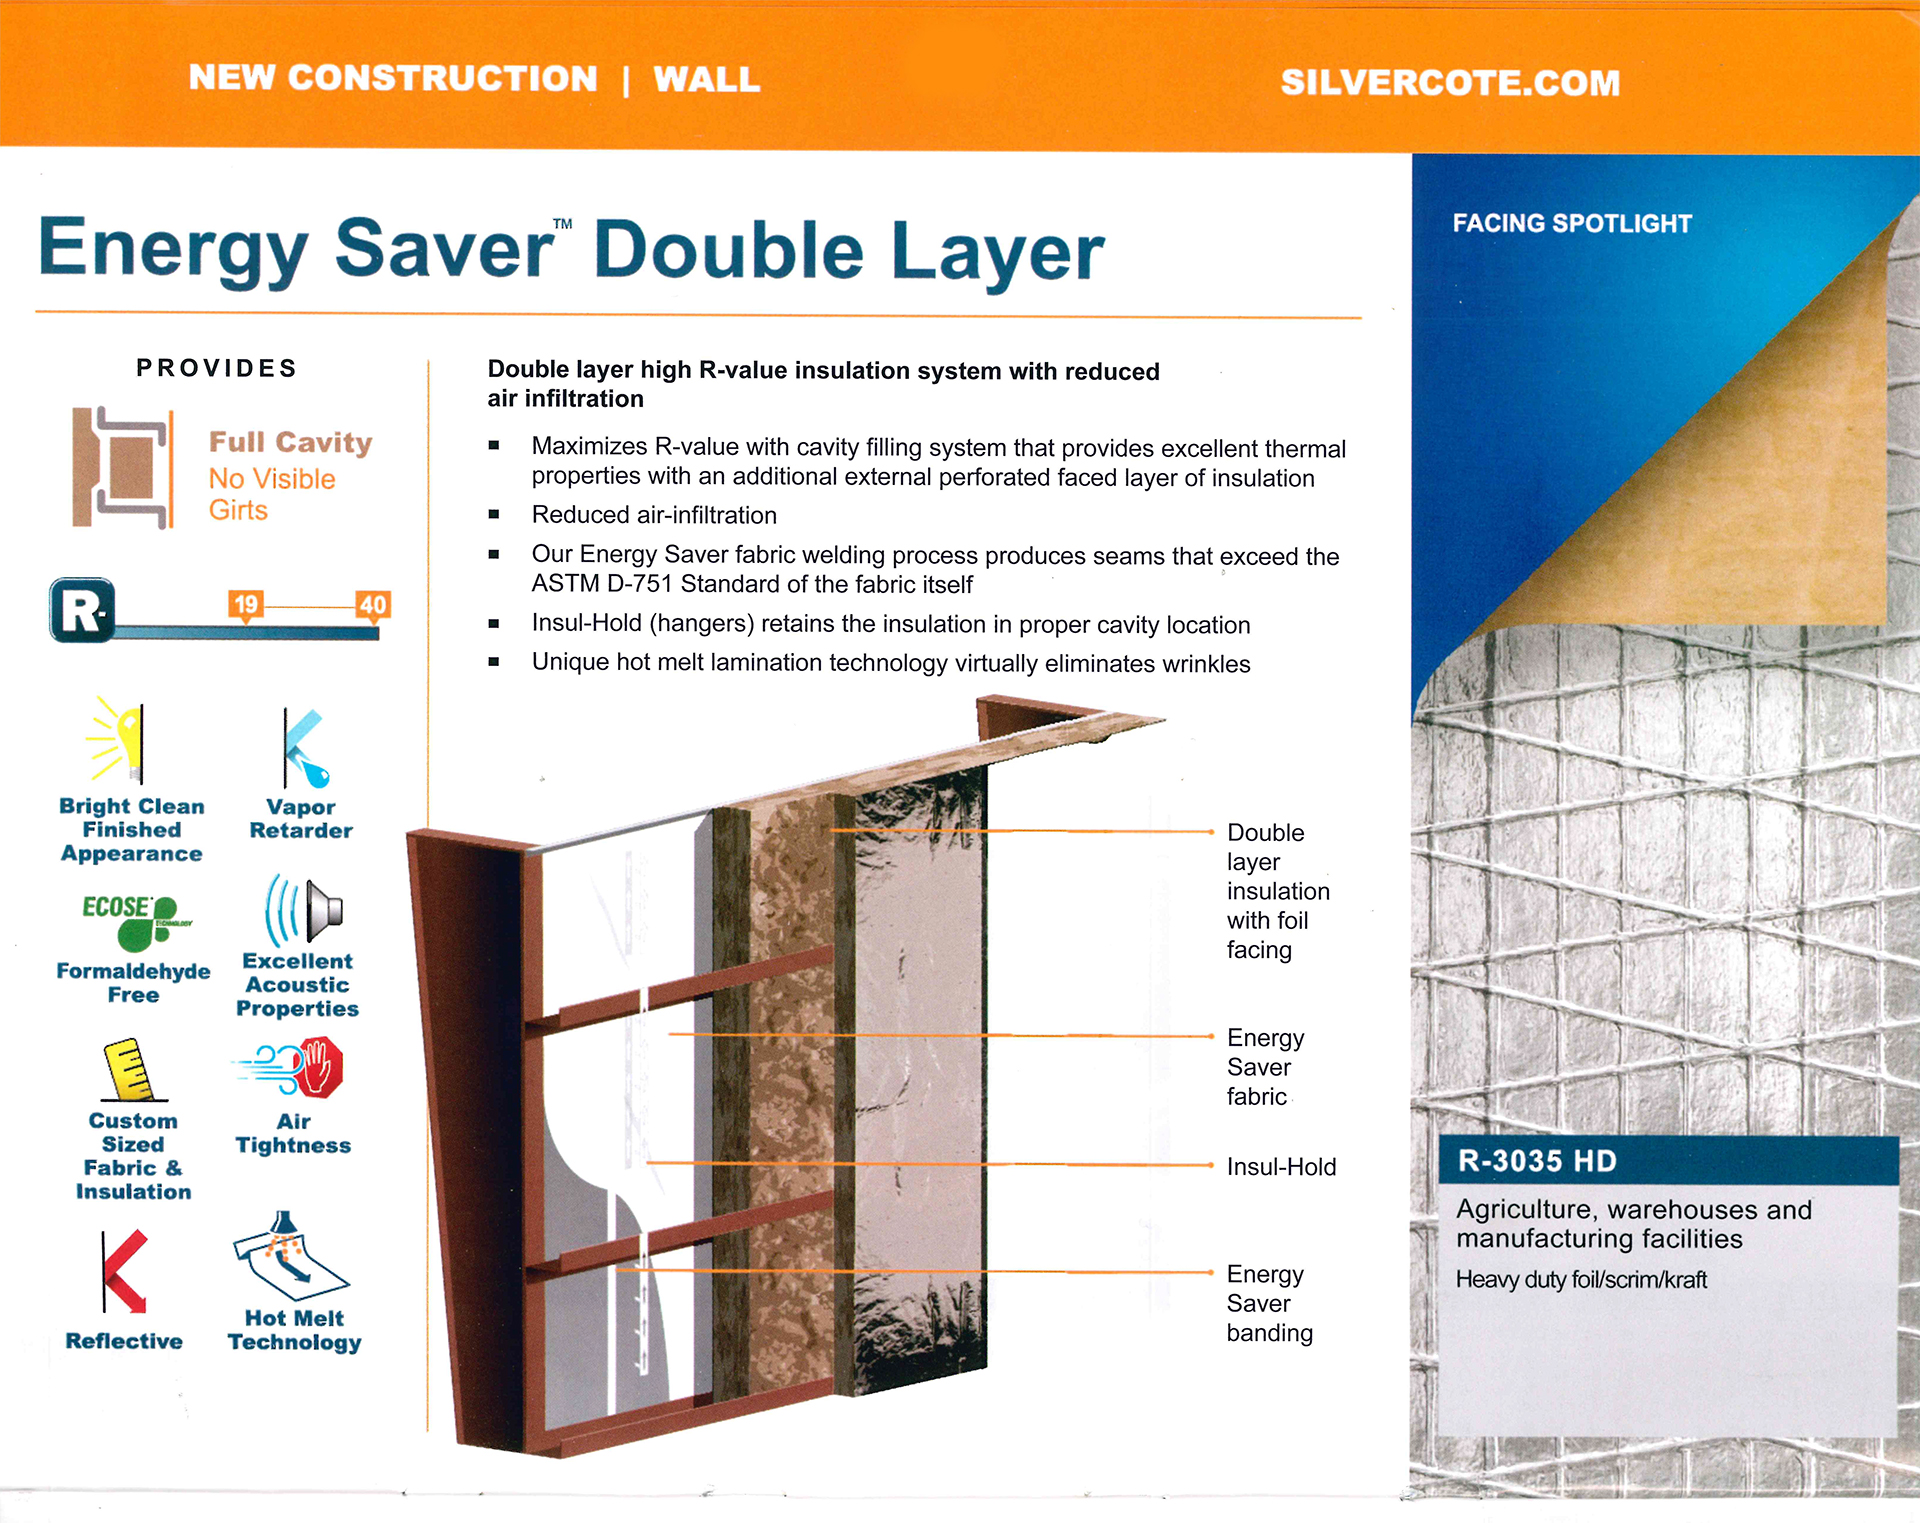 Energy Saver Double Layer